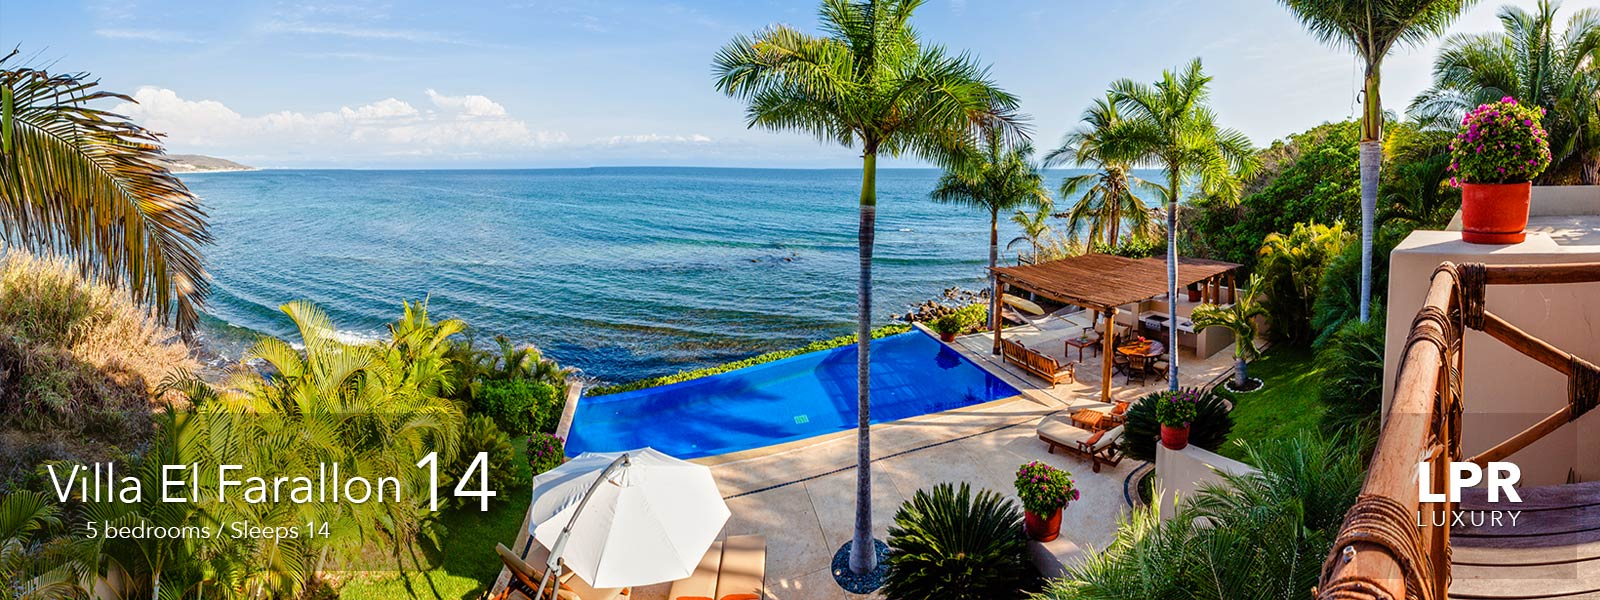 Villa El Farallon 14 - Punta de Mita Luxury Real Estate - Riviera Nayarit, Mexico